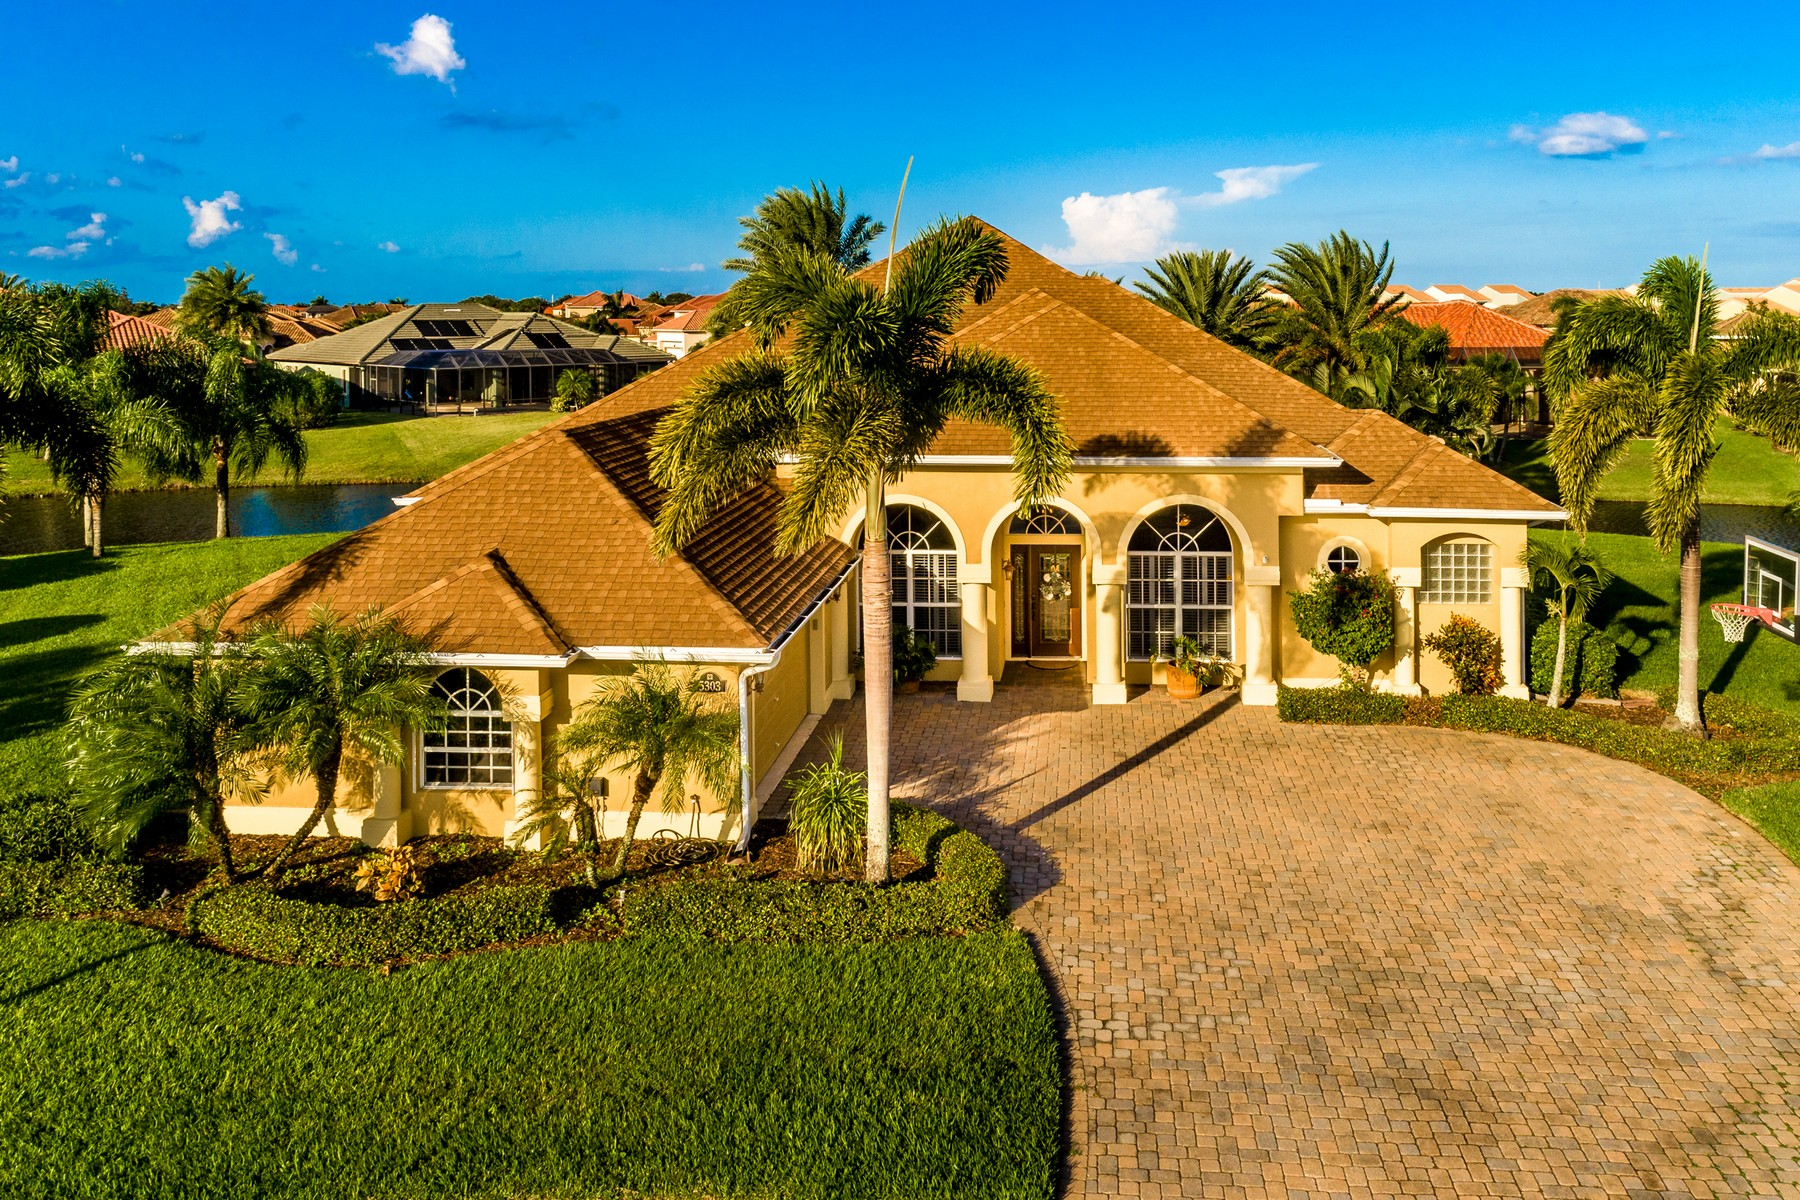 Gorgeous Waterfront Home in Ravencliffe 5303 Picardy Court Rockledge, Florida 32955 Estados Unidos